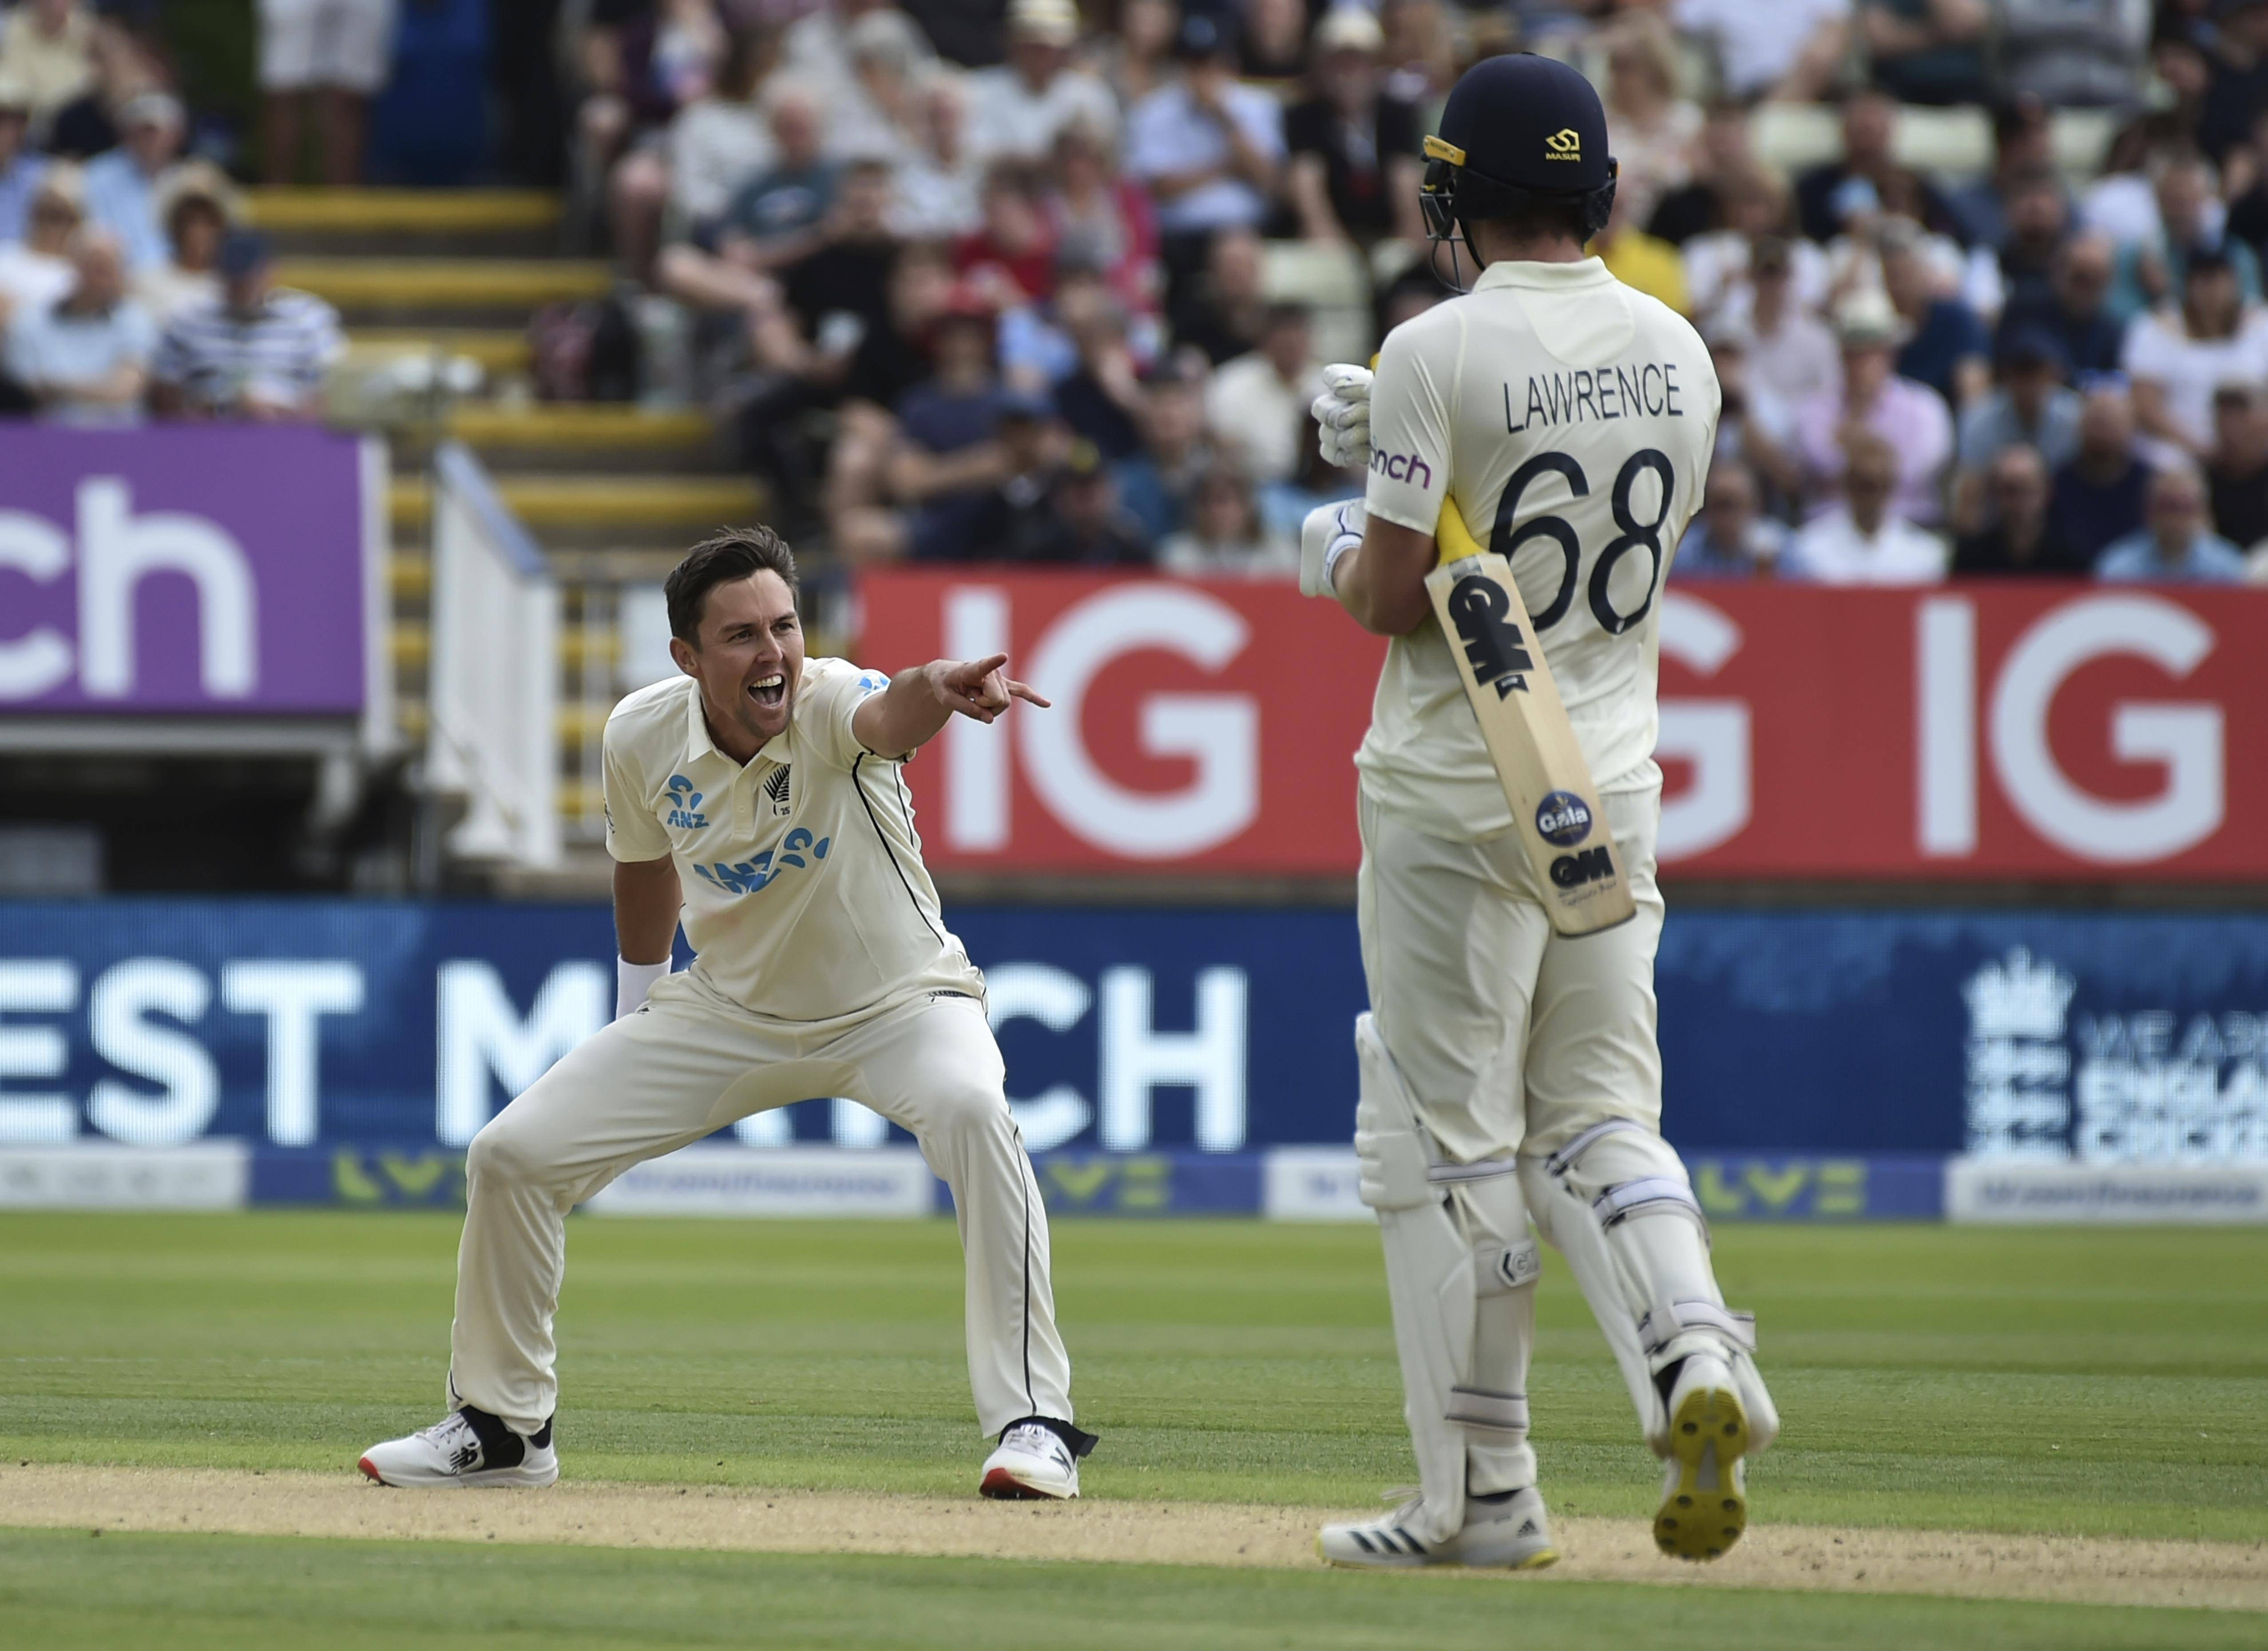 Hope playing in Edgbaston Test would put me in good stead for WTC final, says Boult